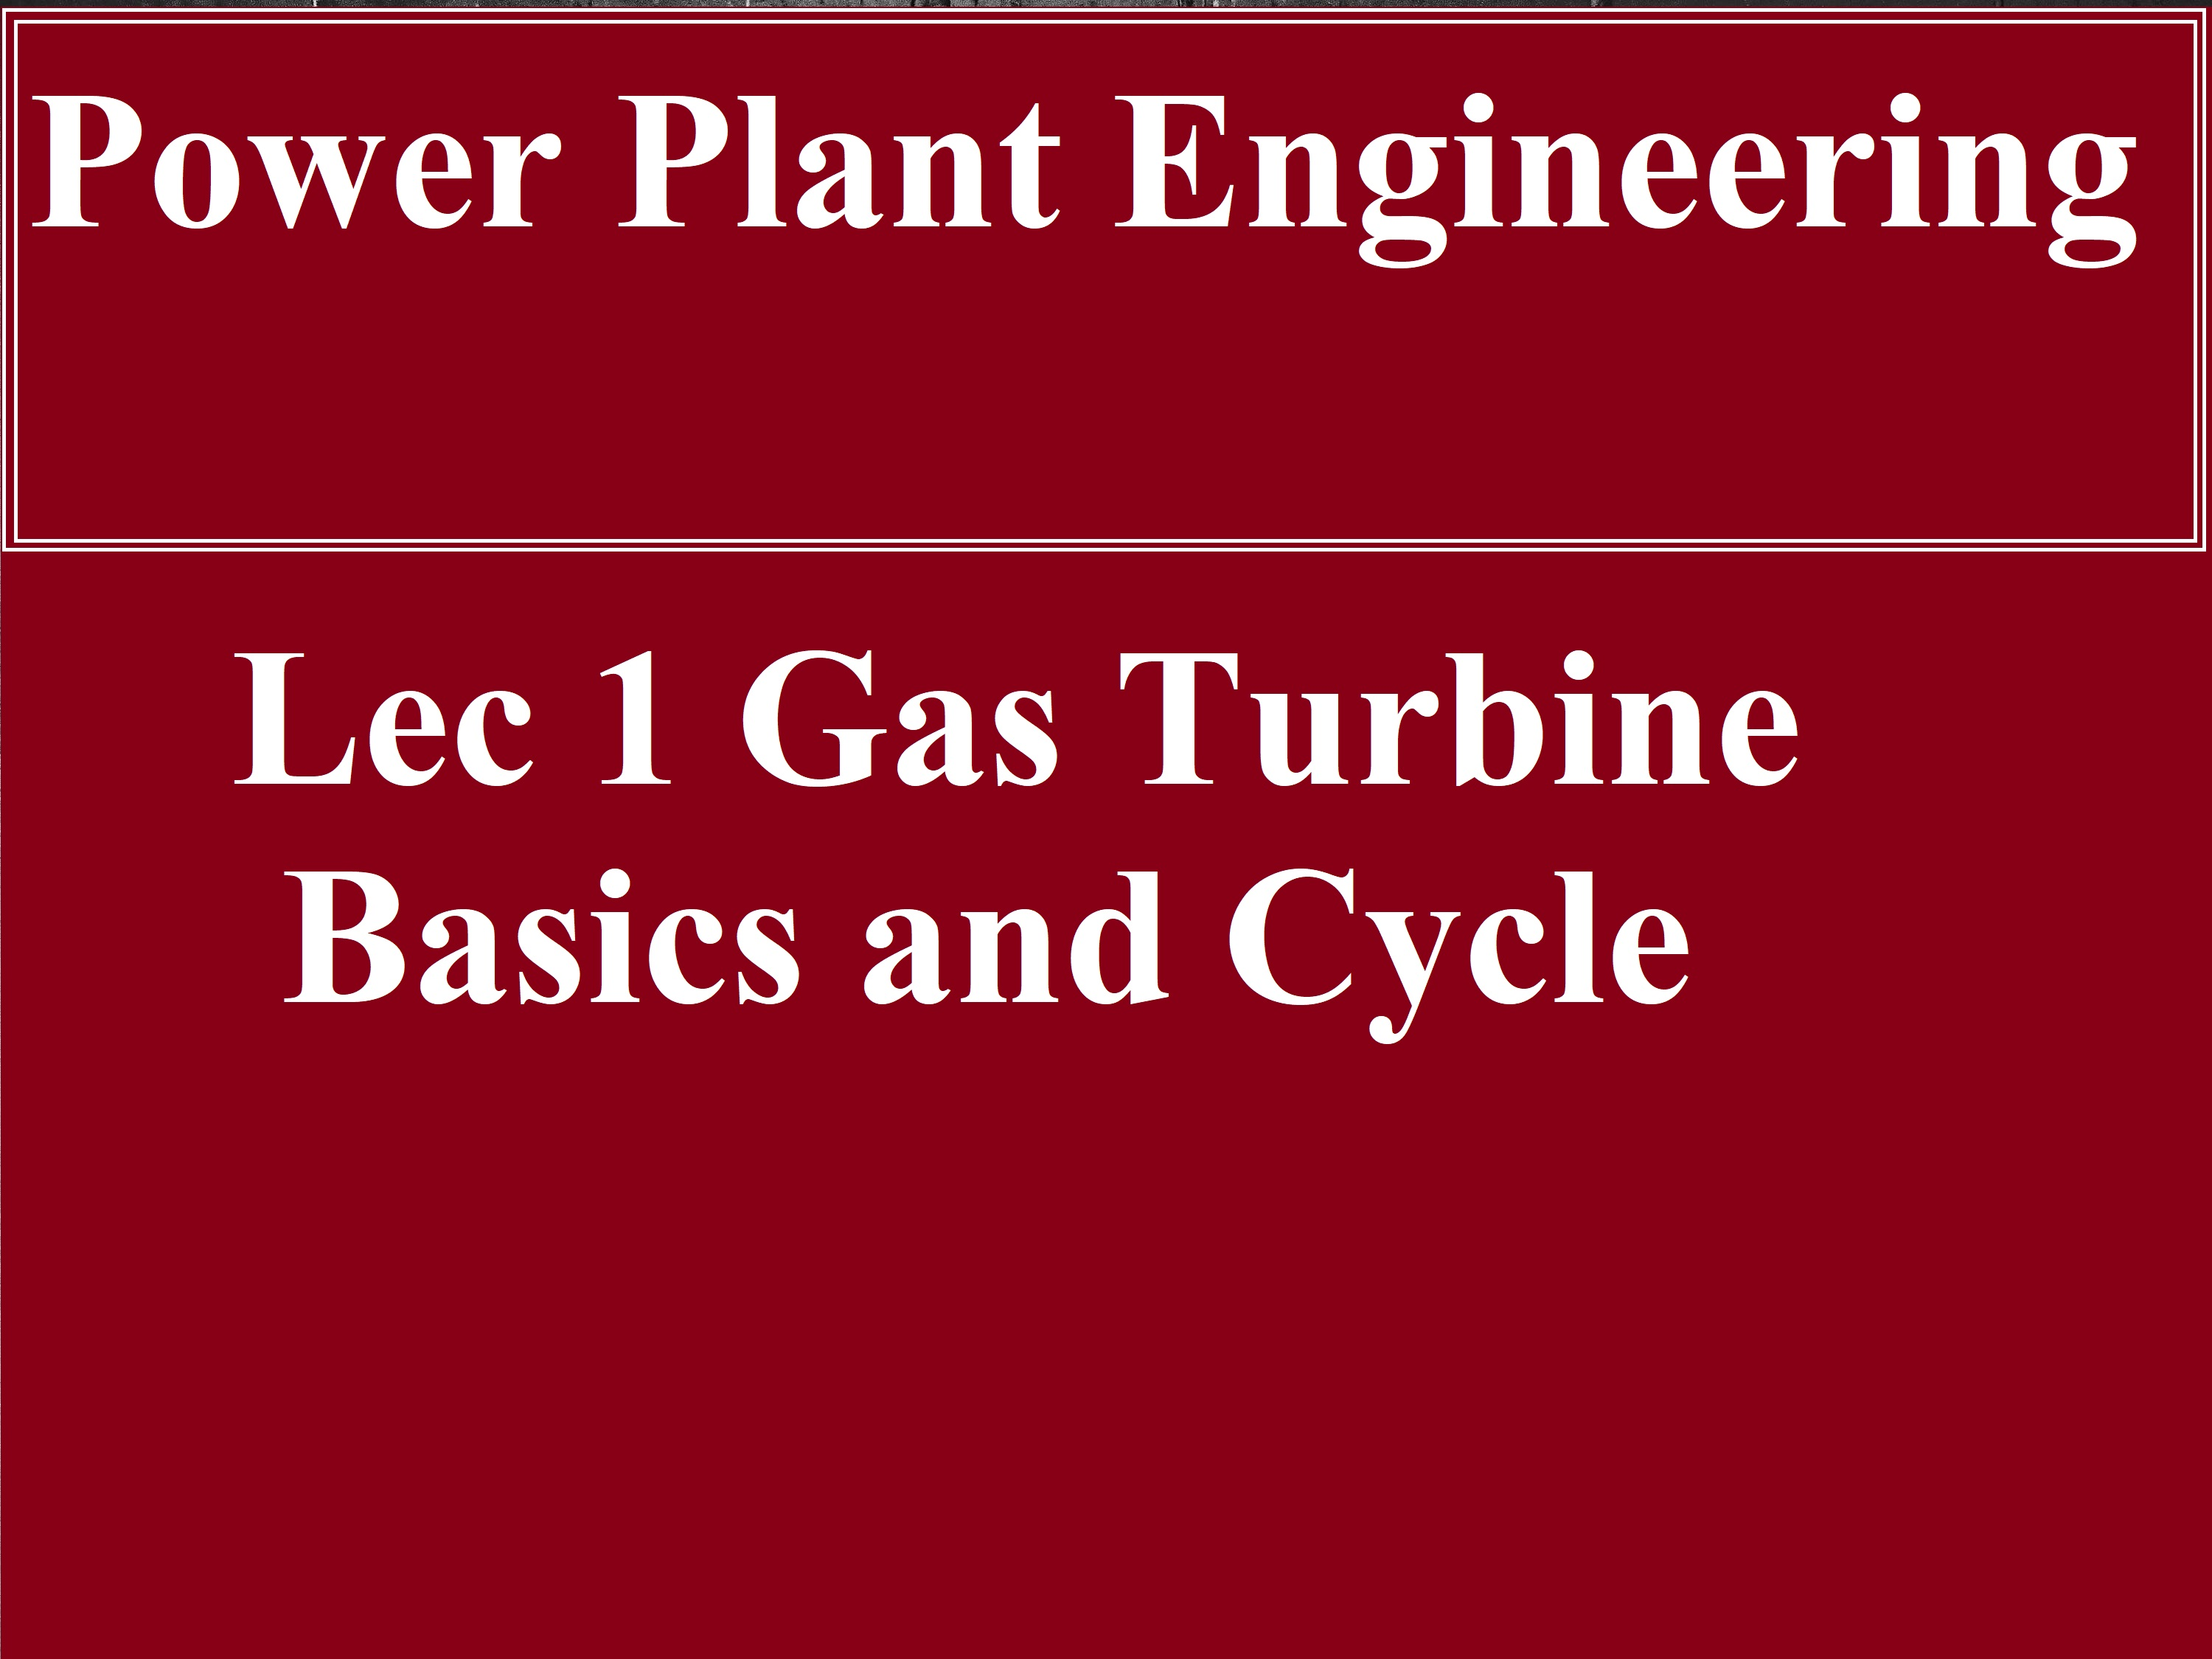 Lec 1 Power Plant (Basics And Cycle)